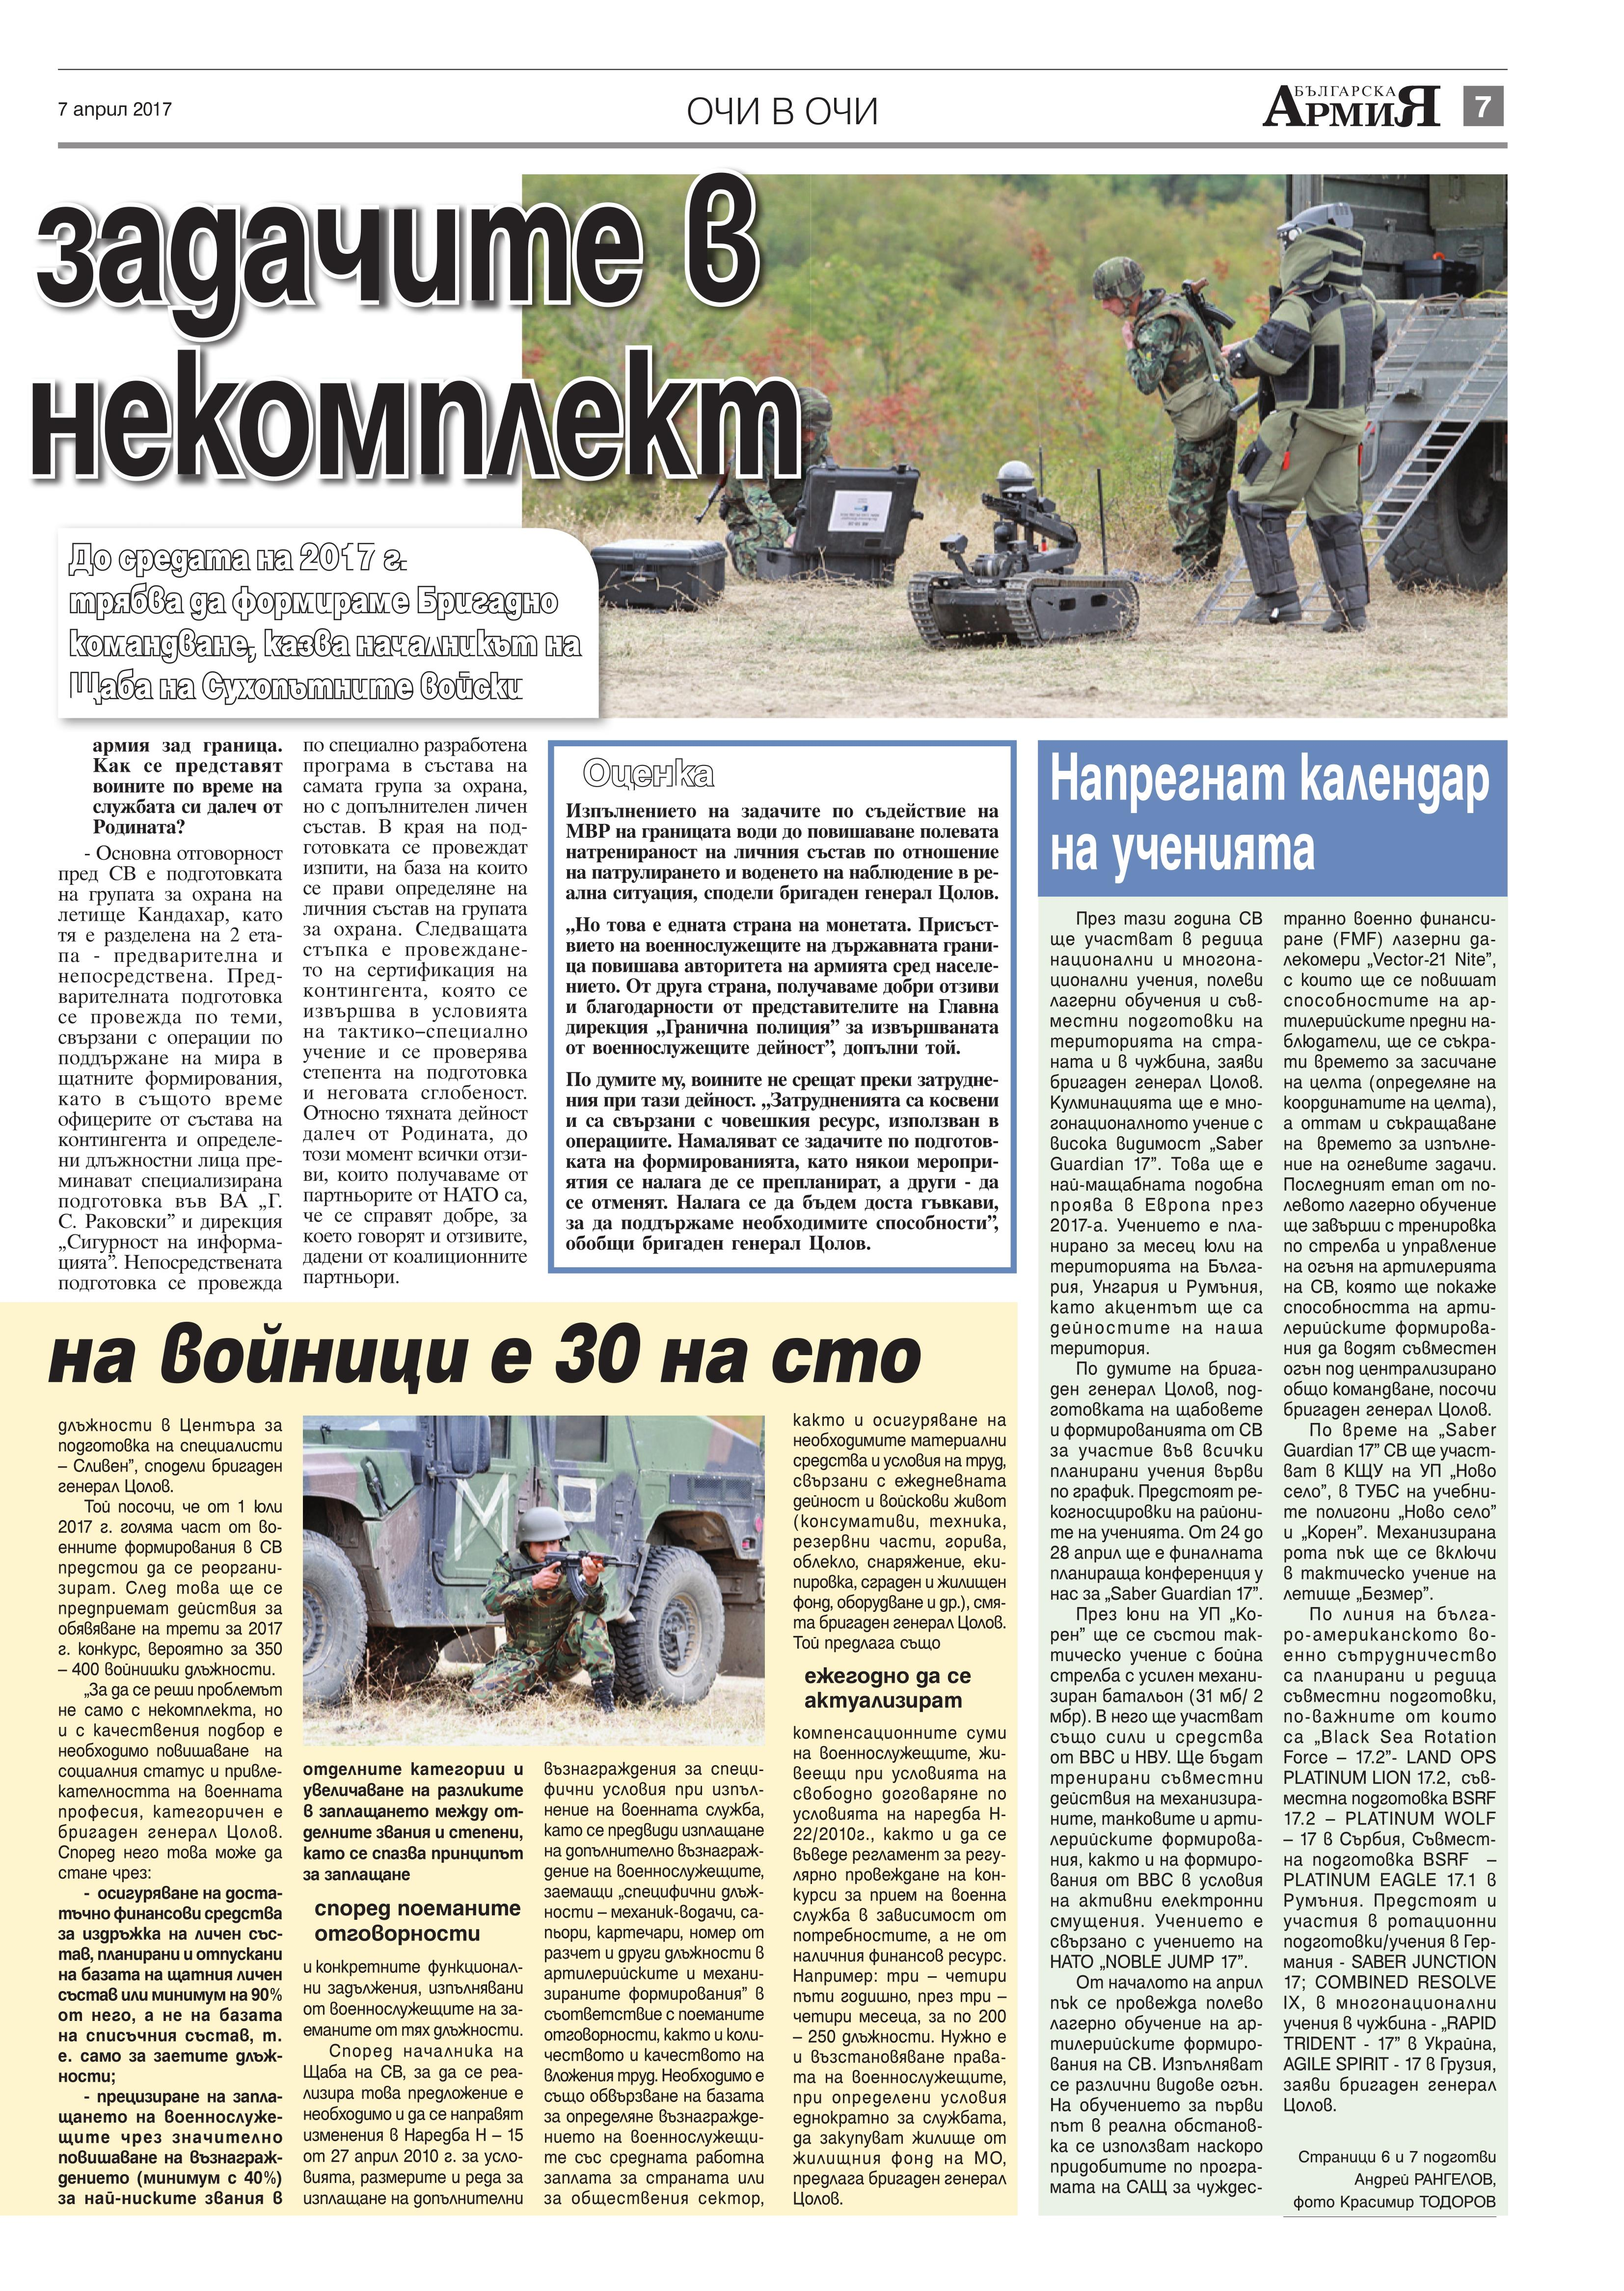 https://www.armymedia.bg/wp-content/uploads/2015/06/07.page1_-18.jpg